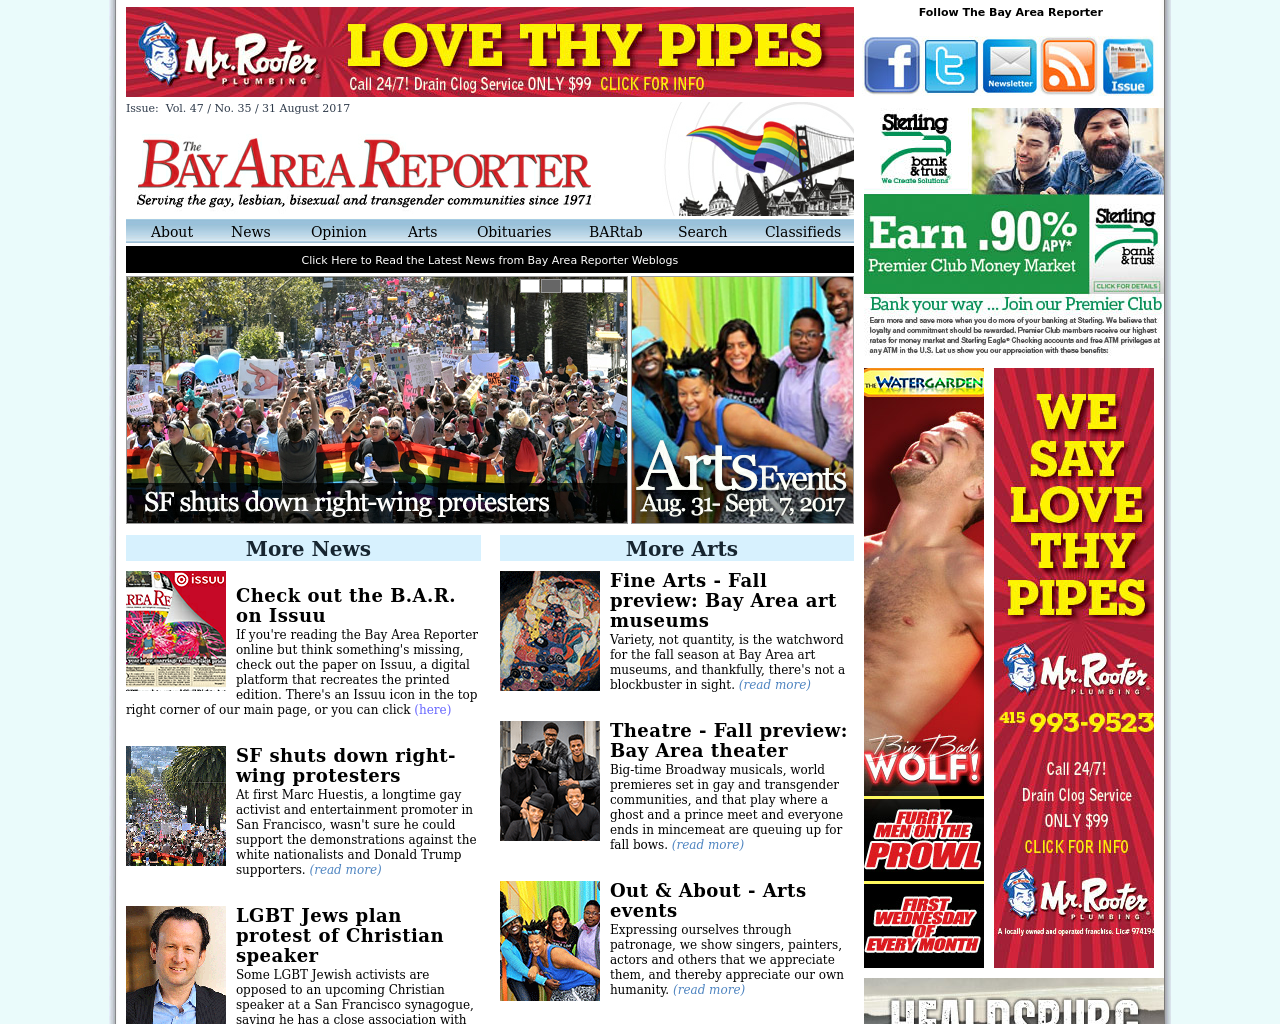 The-Bay-Area-Reporter-Online-Advertising-Reviews-Pricing